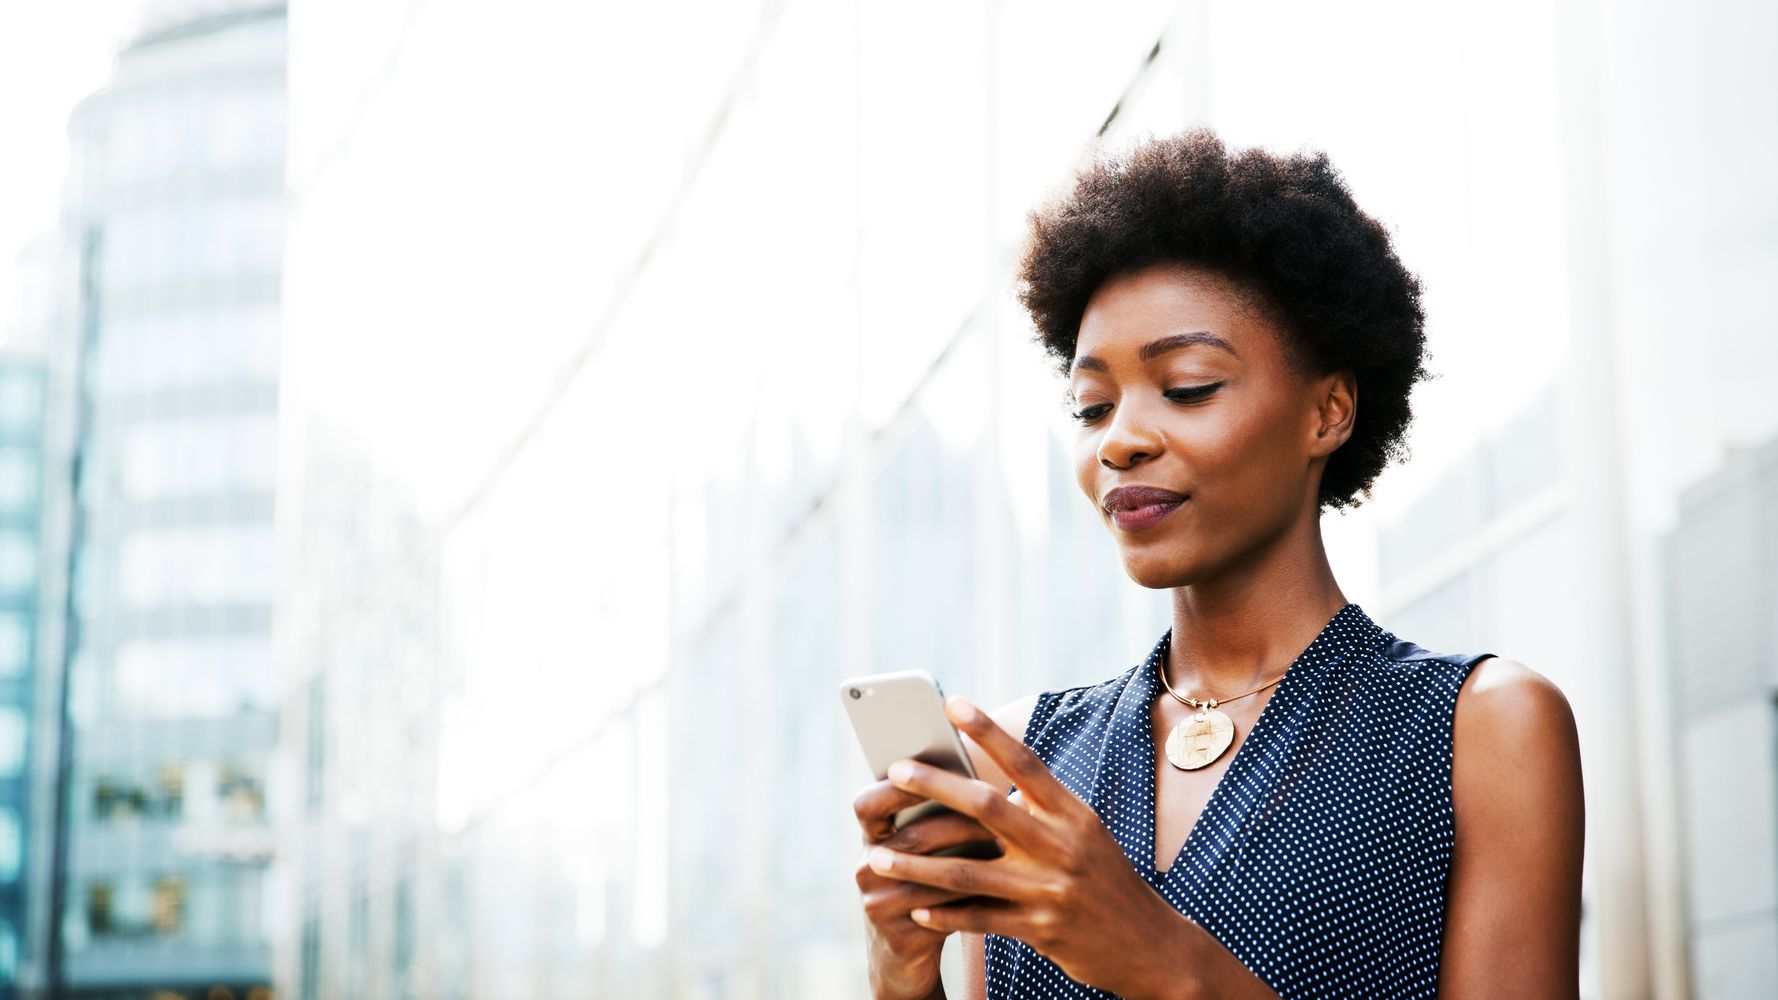 6 Apps To Make Work Travel A Little Less Stressful